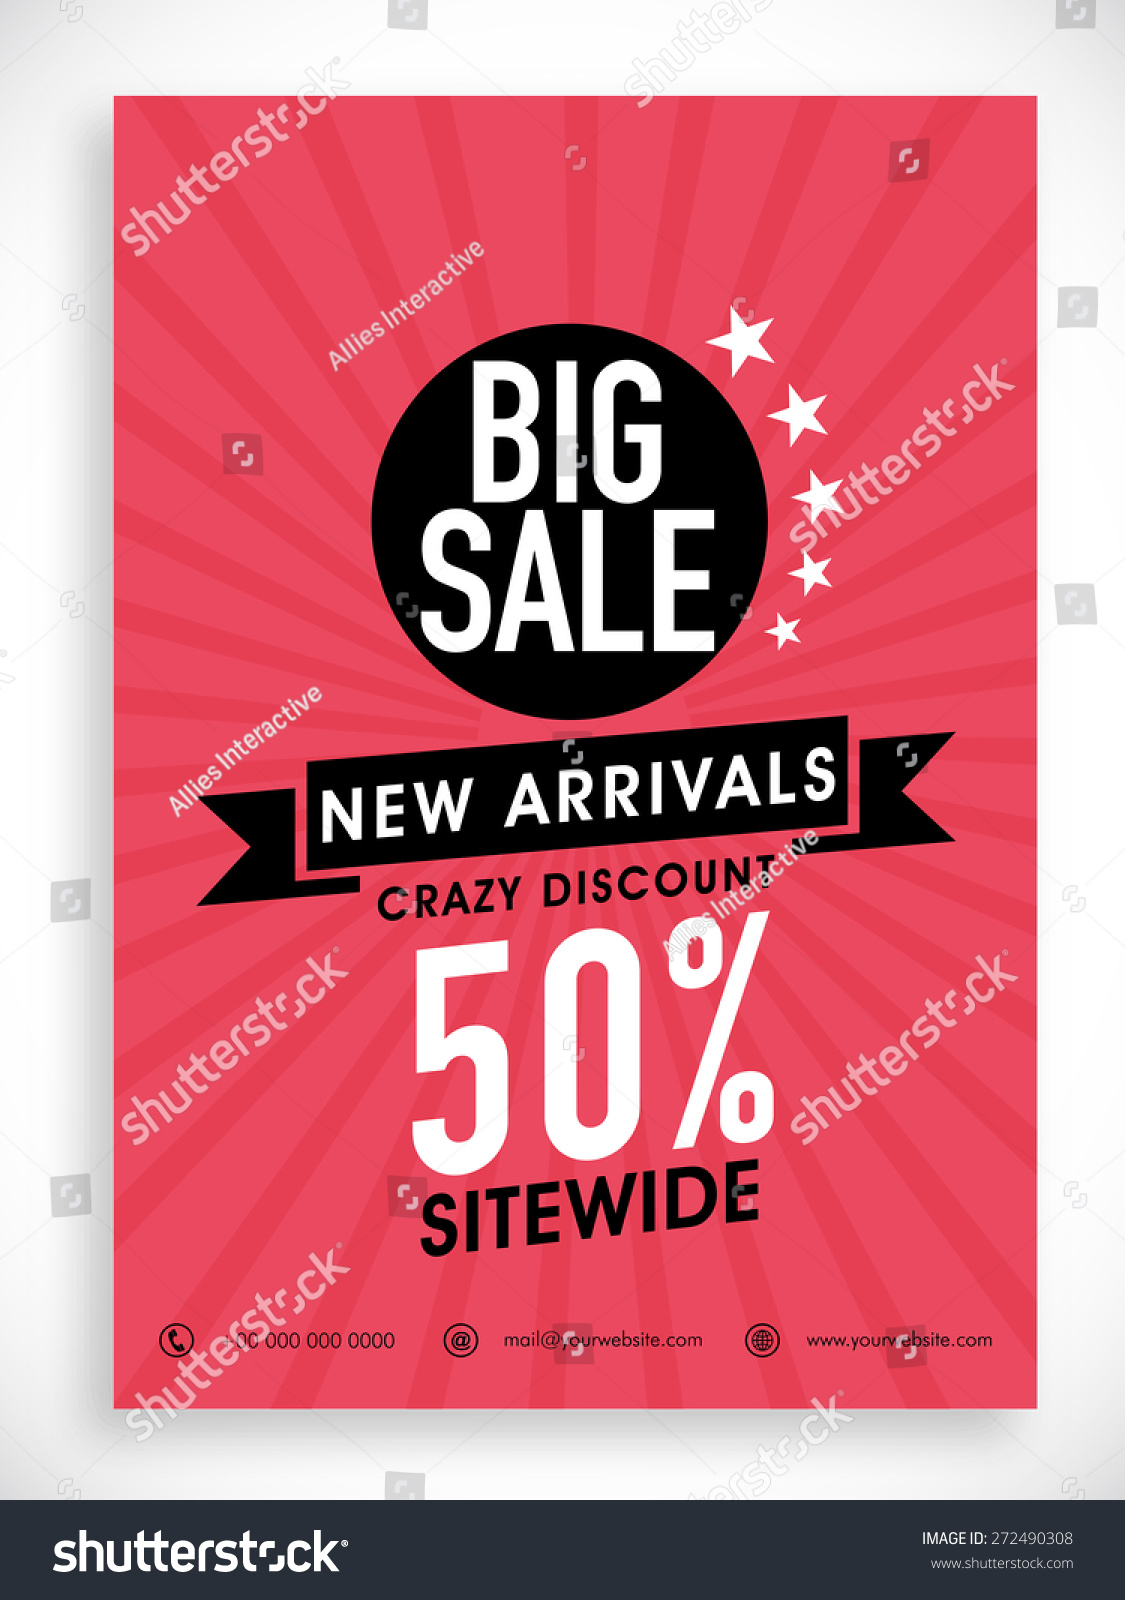 stylish big poster banner flyer stock vector  stylish big poster banner or flyer design discount offer on new arrivals